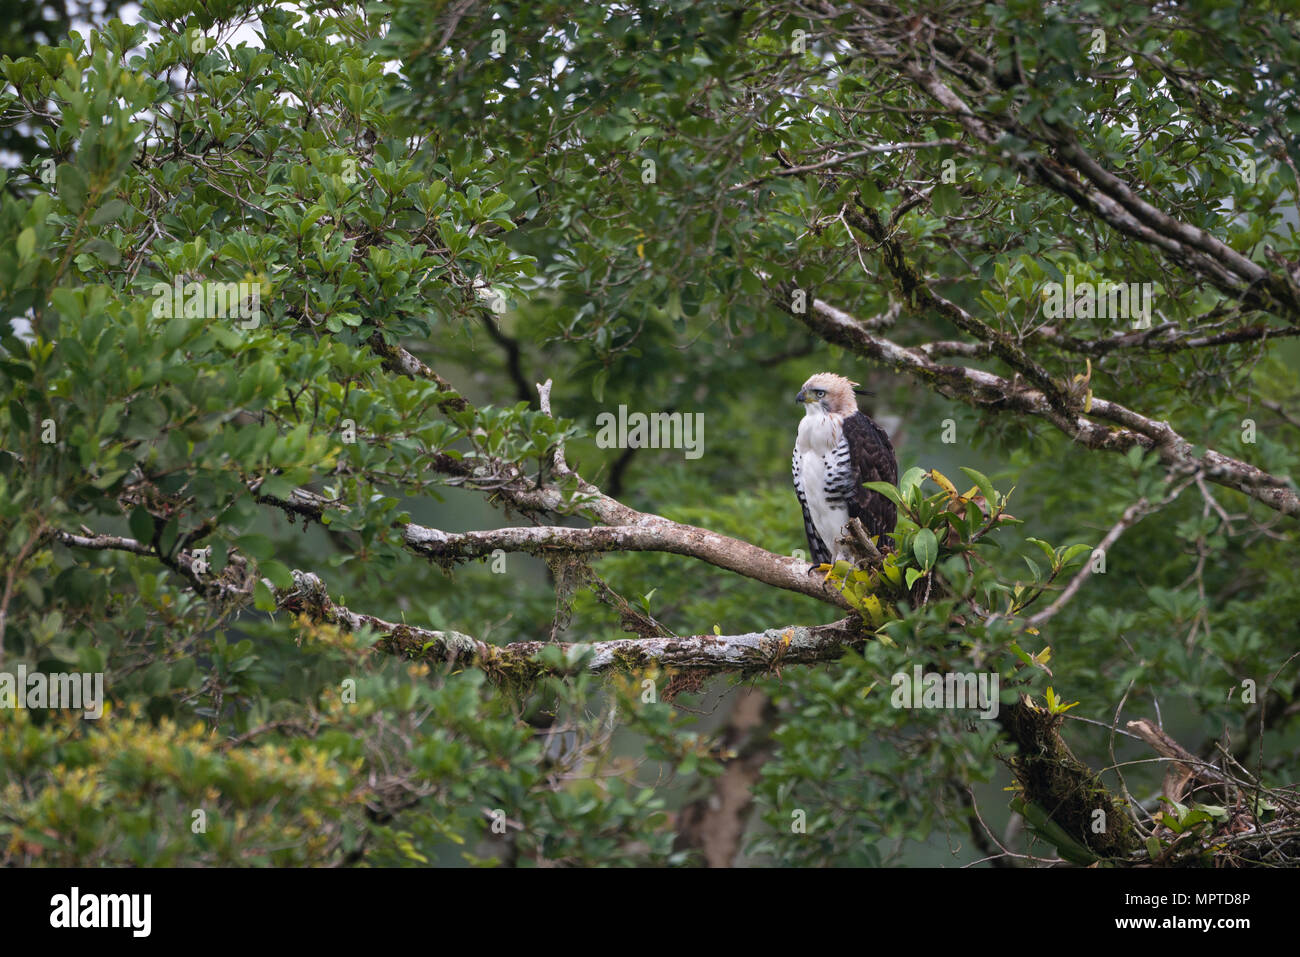 Immature Ornate Hawk-Eagle (Spizaetus ornatus) érched on a tree in the Atlantic Rainforest - Stock Image